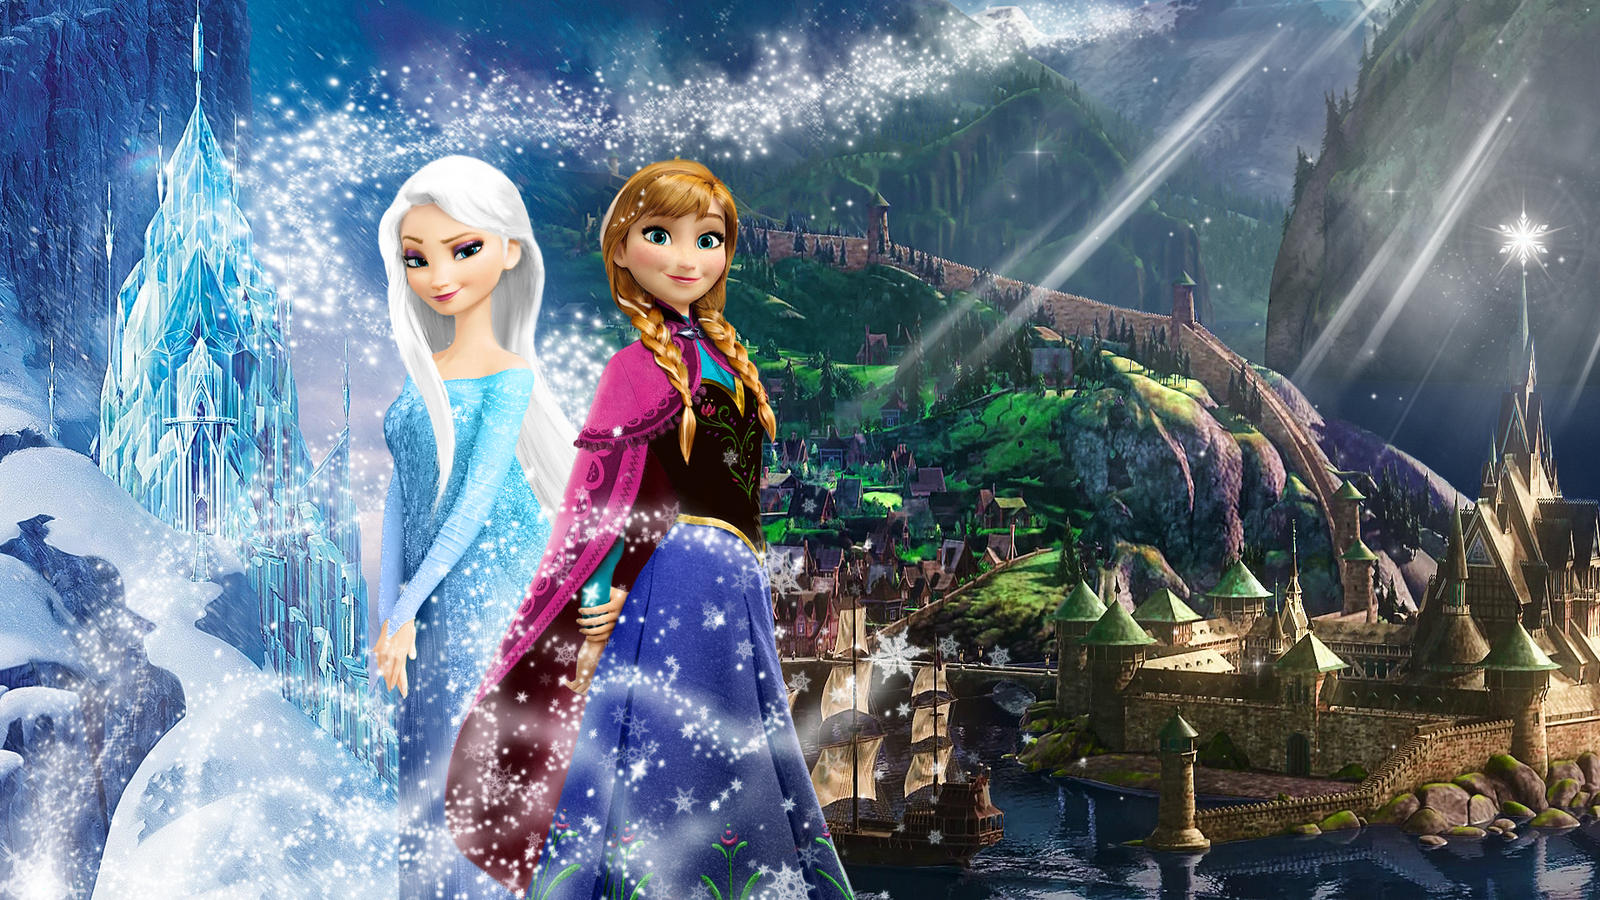 frozen - 1920x1080 (elsa and anna of arendelle)muehlich86 on